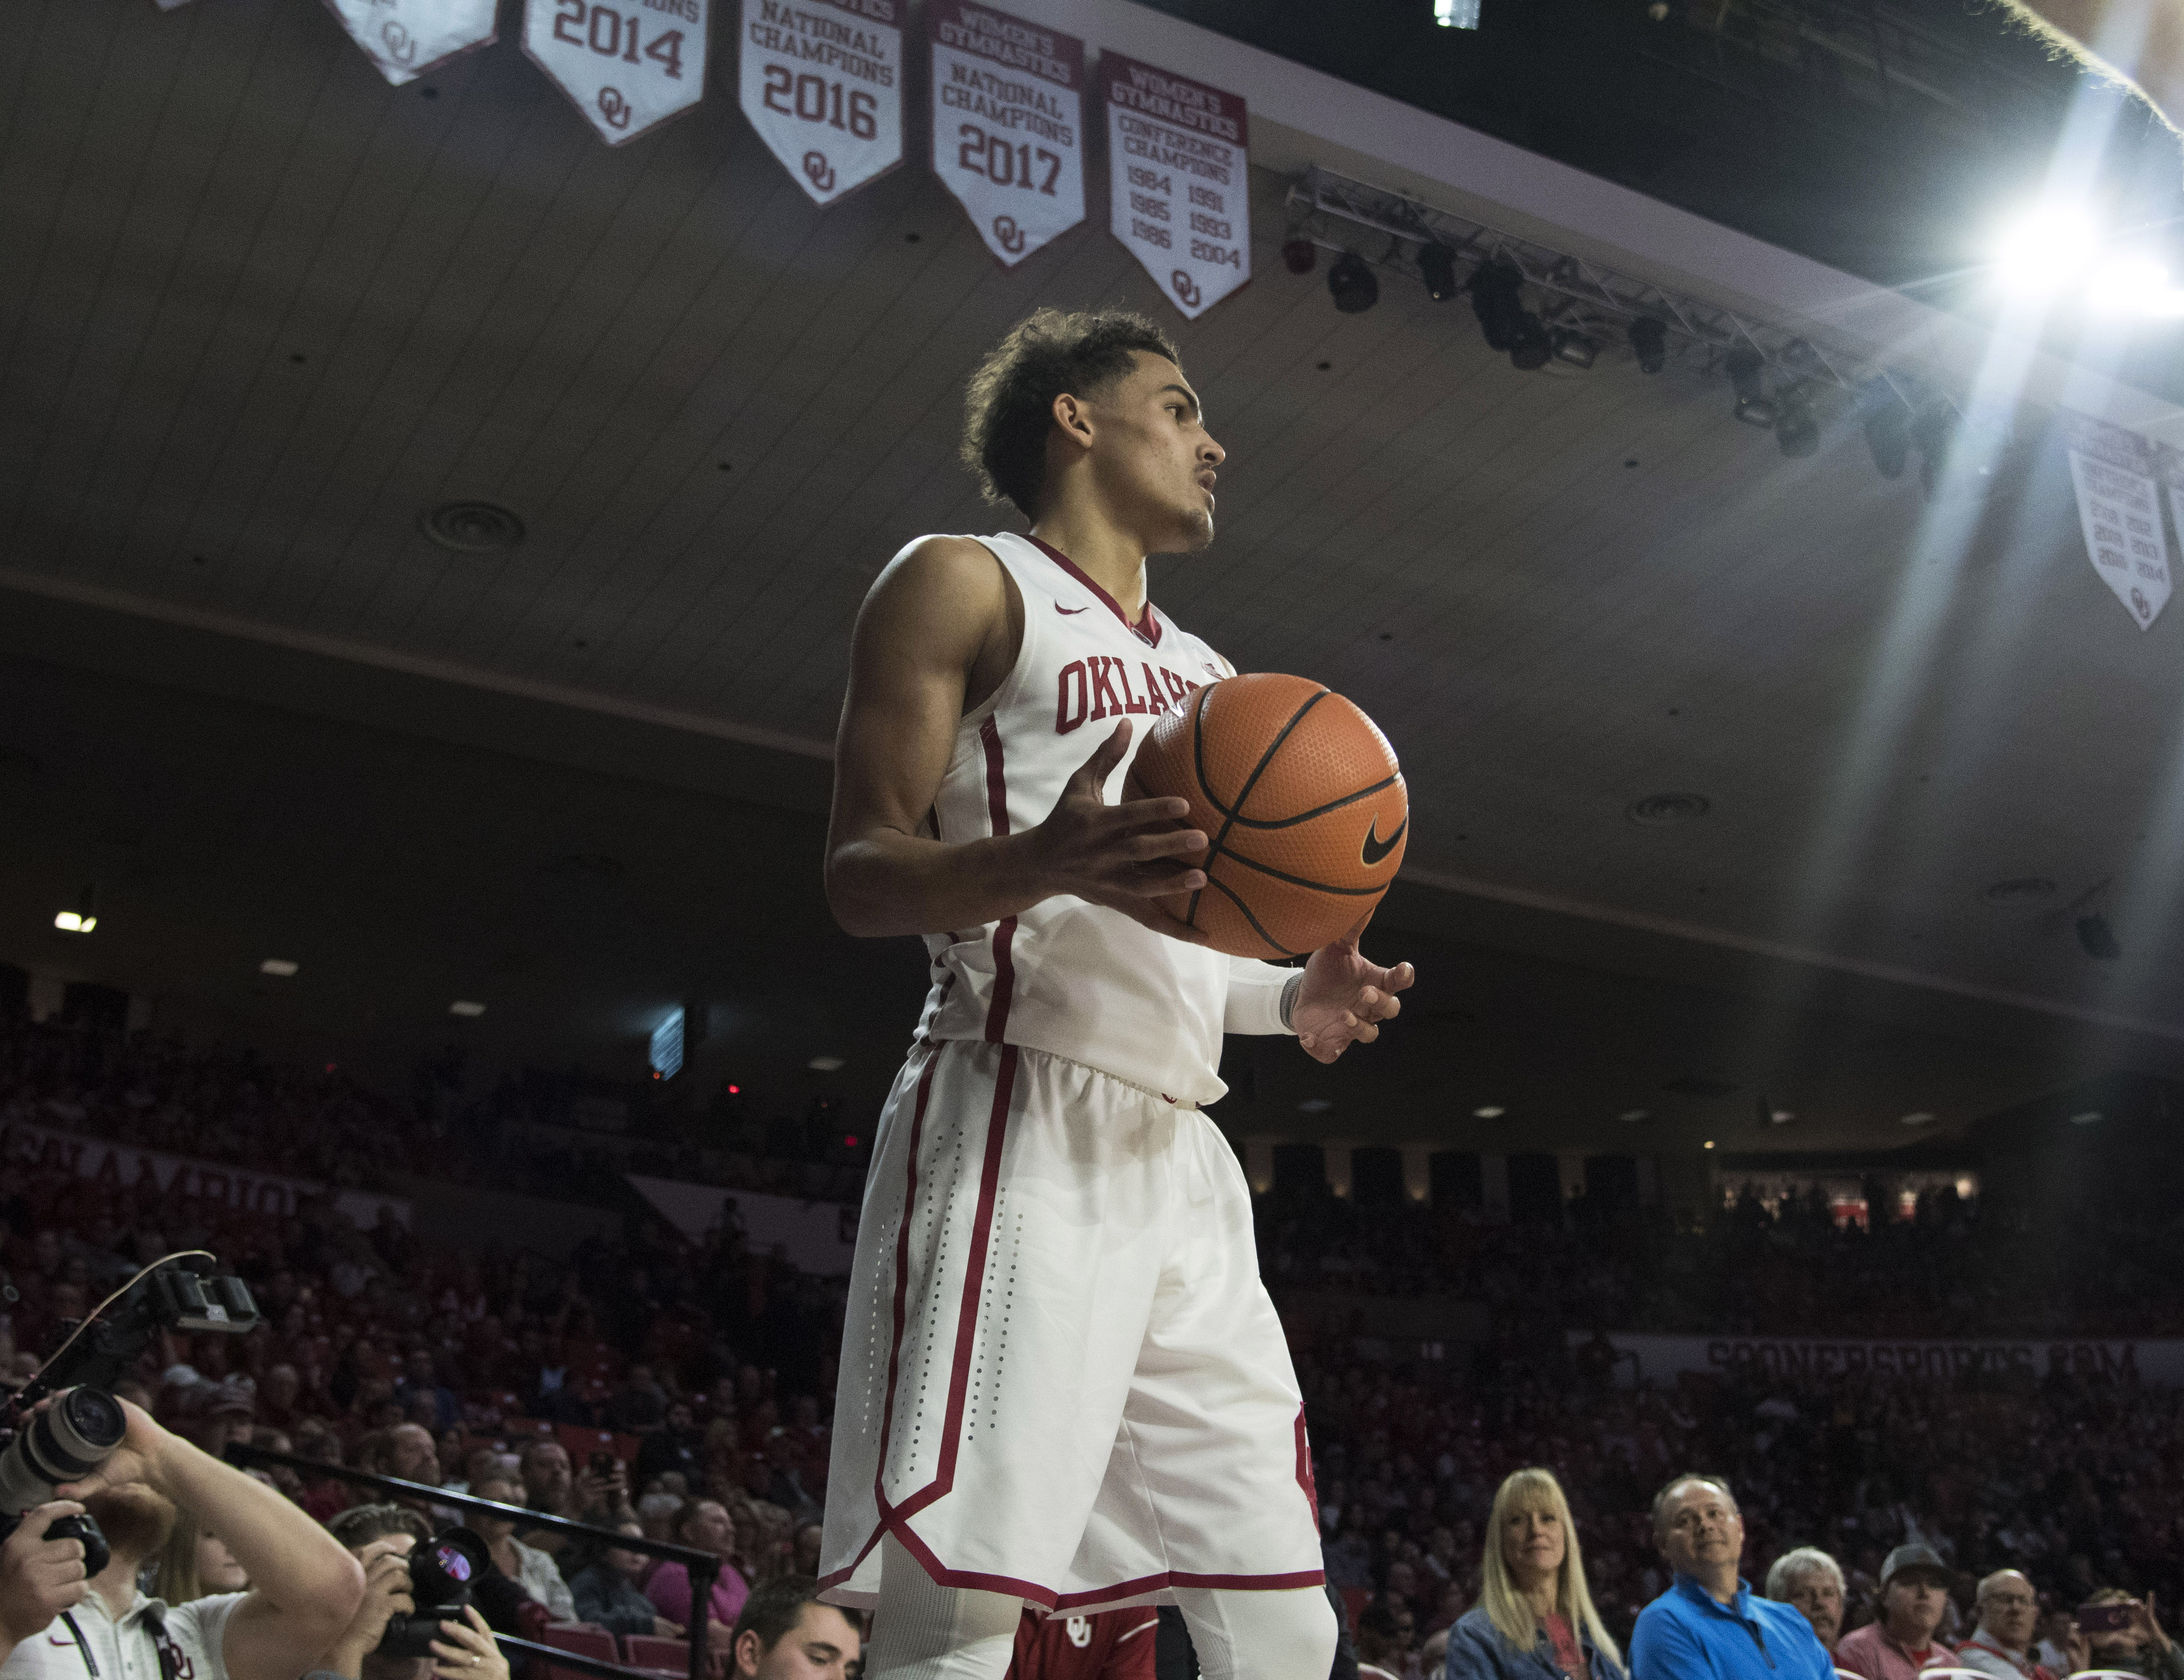 Oklahoma makes March Madness as No. 10 seed